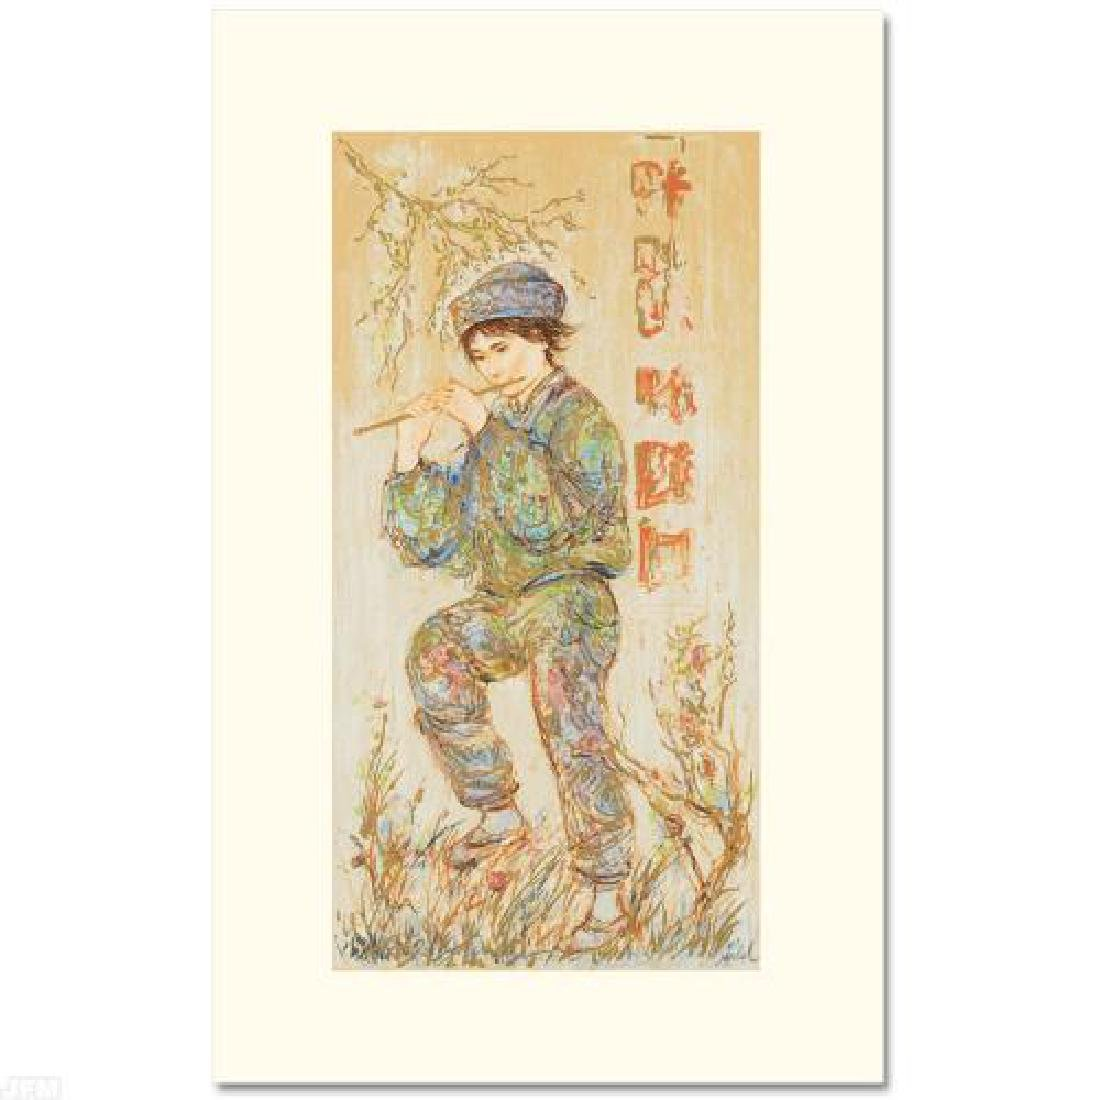 Puck LIMITED EDITION Serigraph by Edna Hibel - 3